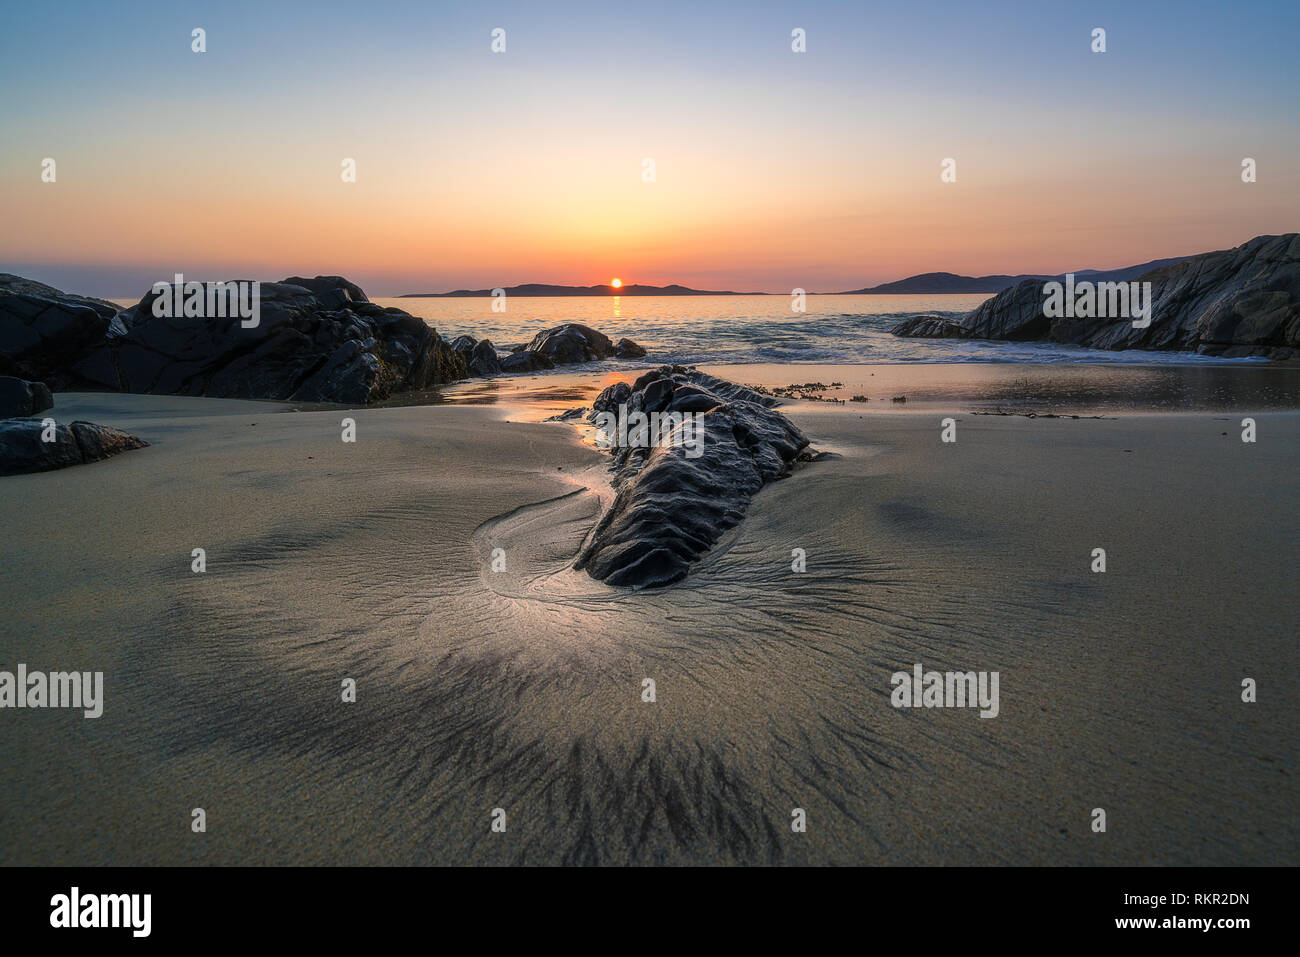 Circular sand pattern on a sunset beach on the Isle of Harris, Outer Hebrides, Scotland - Stock Image